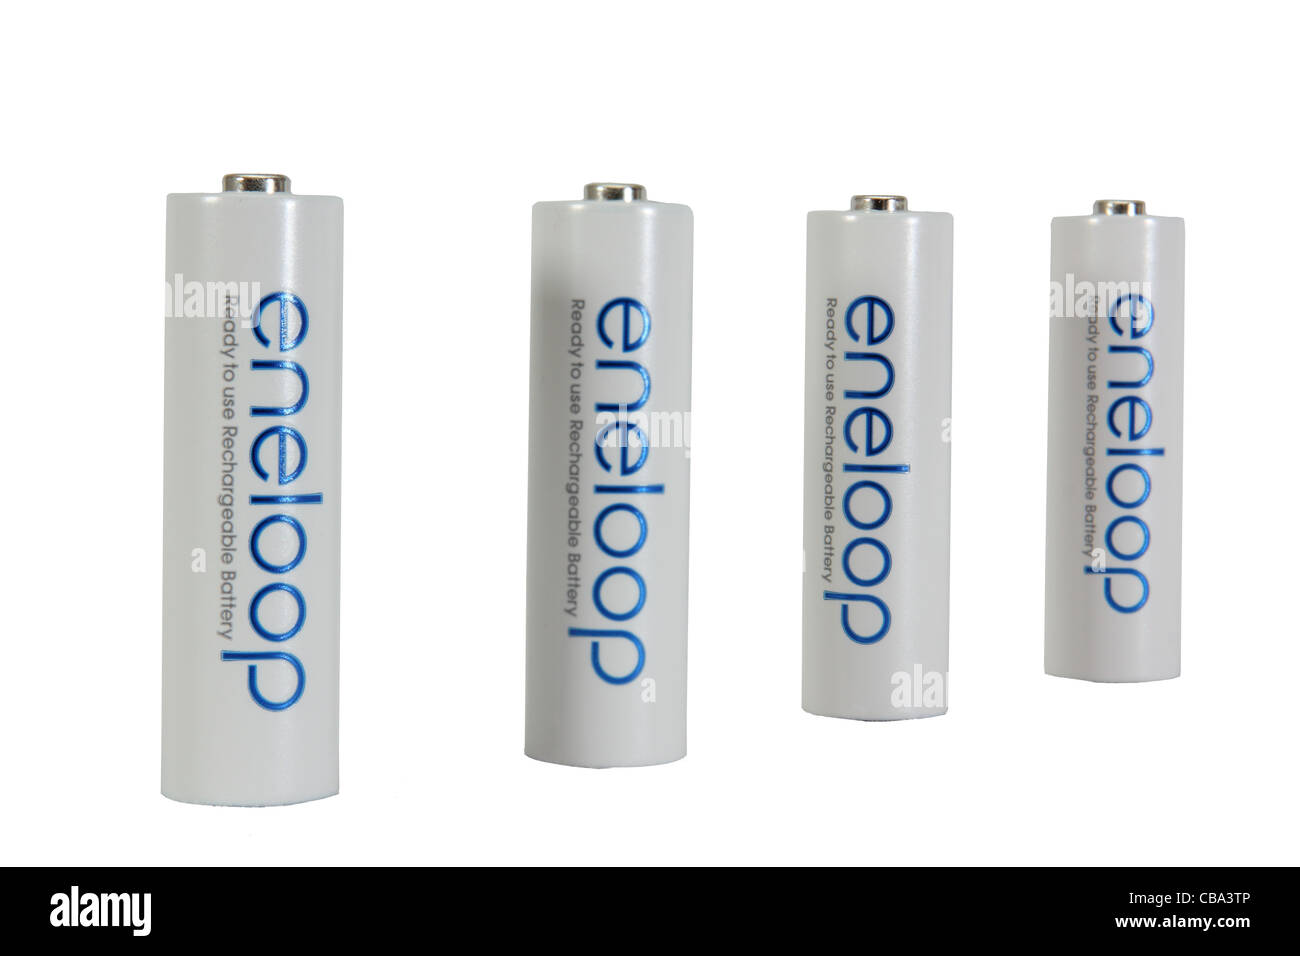 Perspective view of a group of 4 Sanyo Eneloop NiMH long life rechargeable batteries  isolated on white background Stock Photo